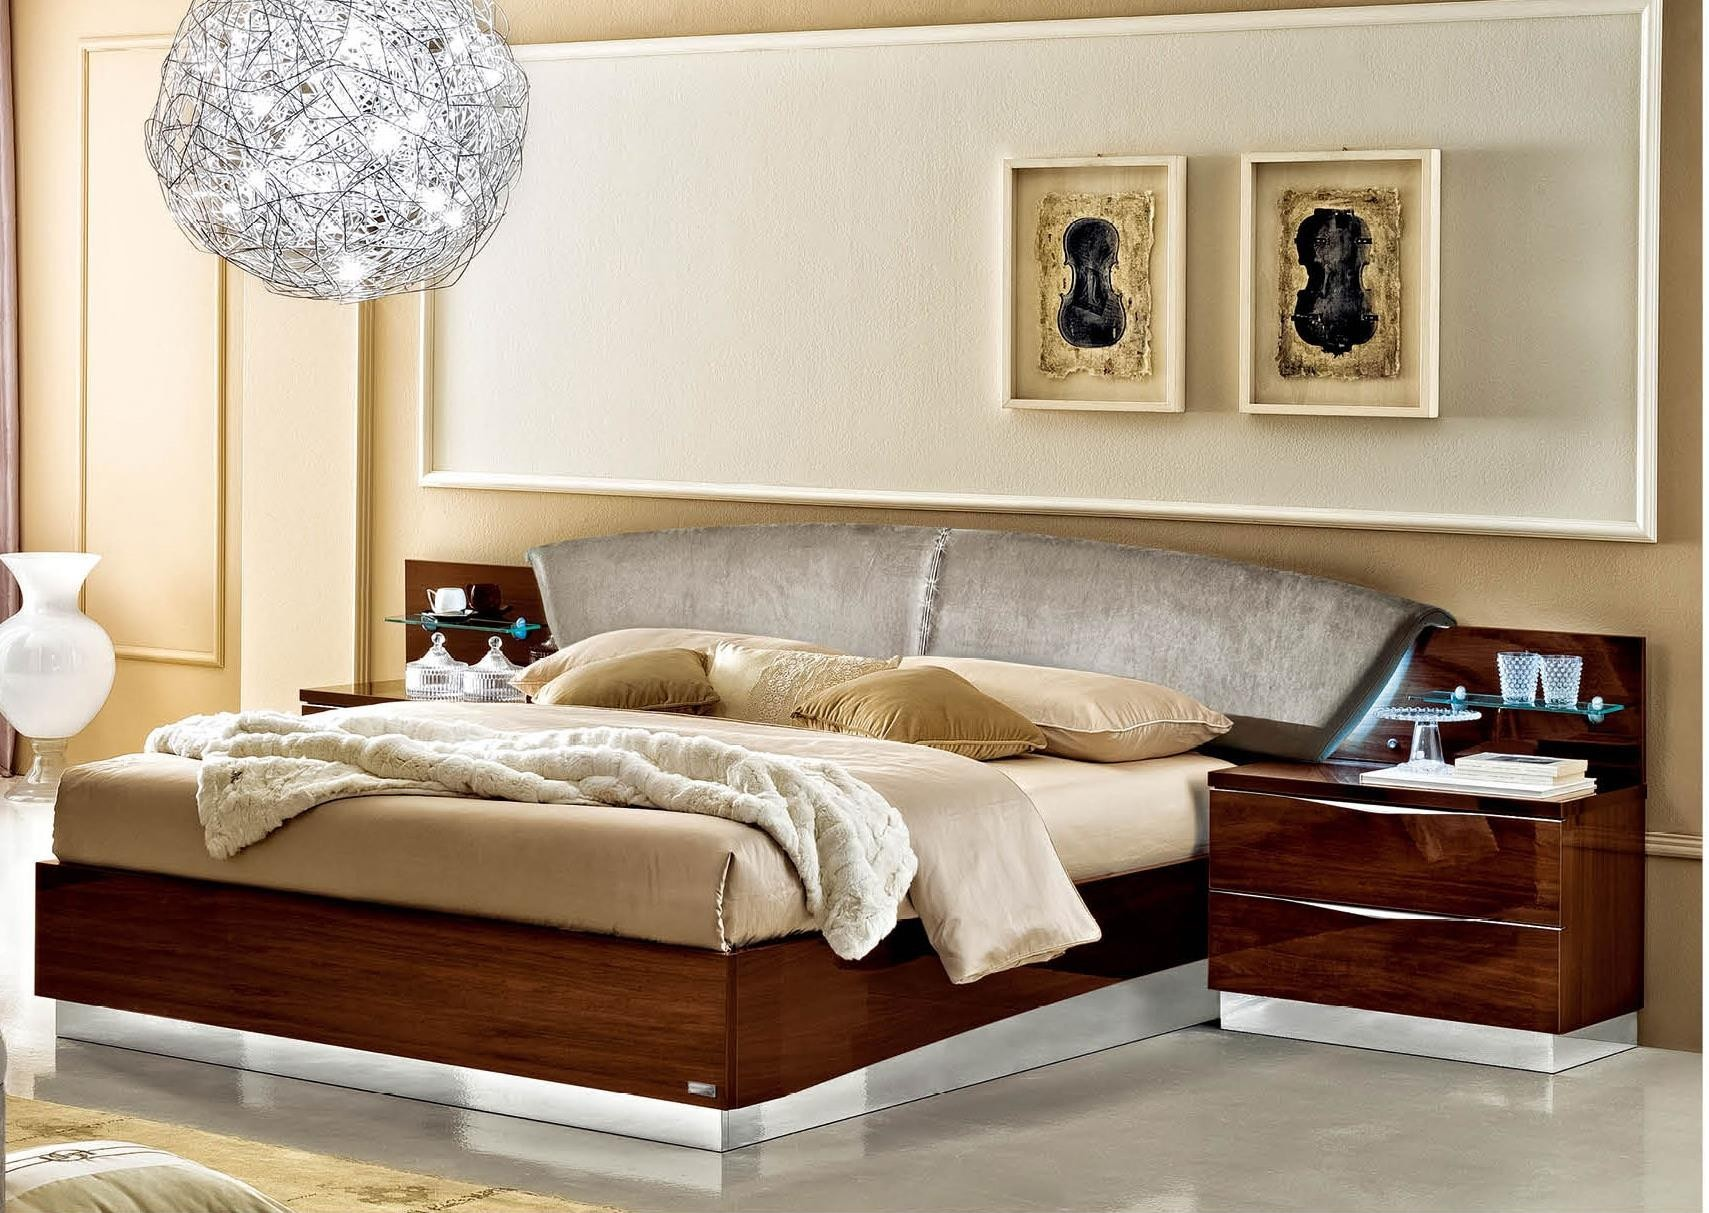 italian bedroom sets furniture. More Views Italian Bedroom Sets Furniture .